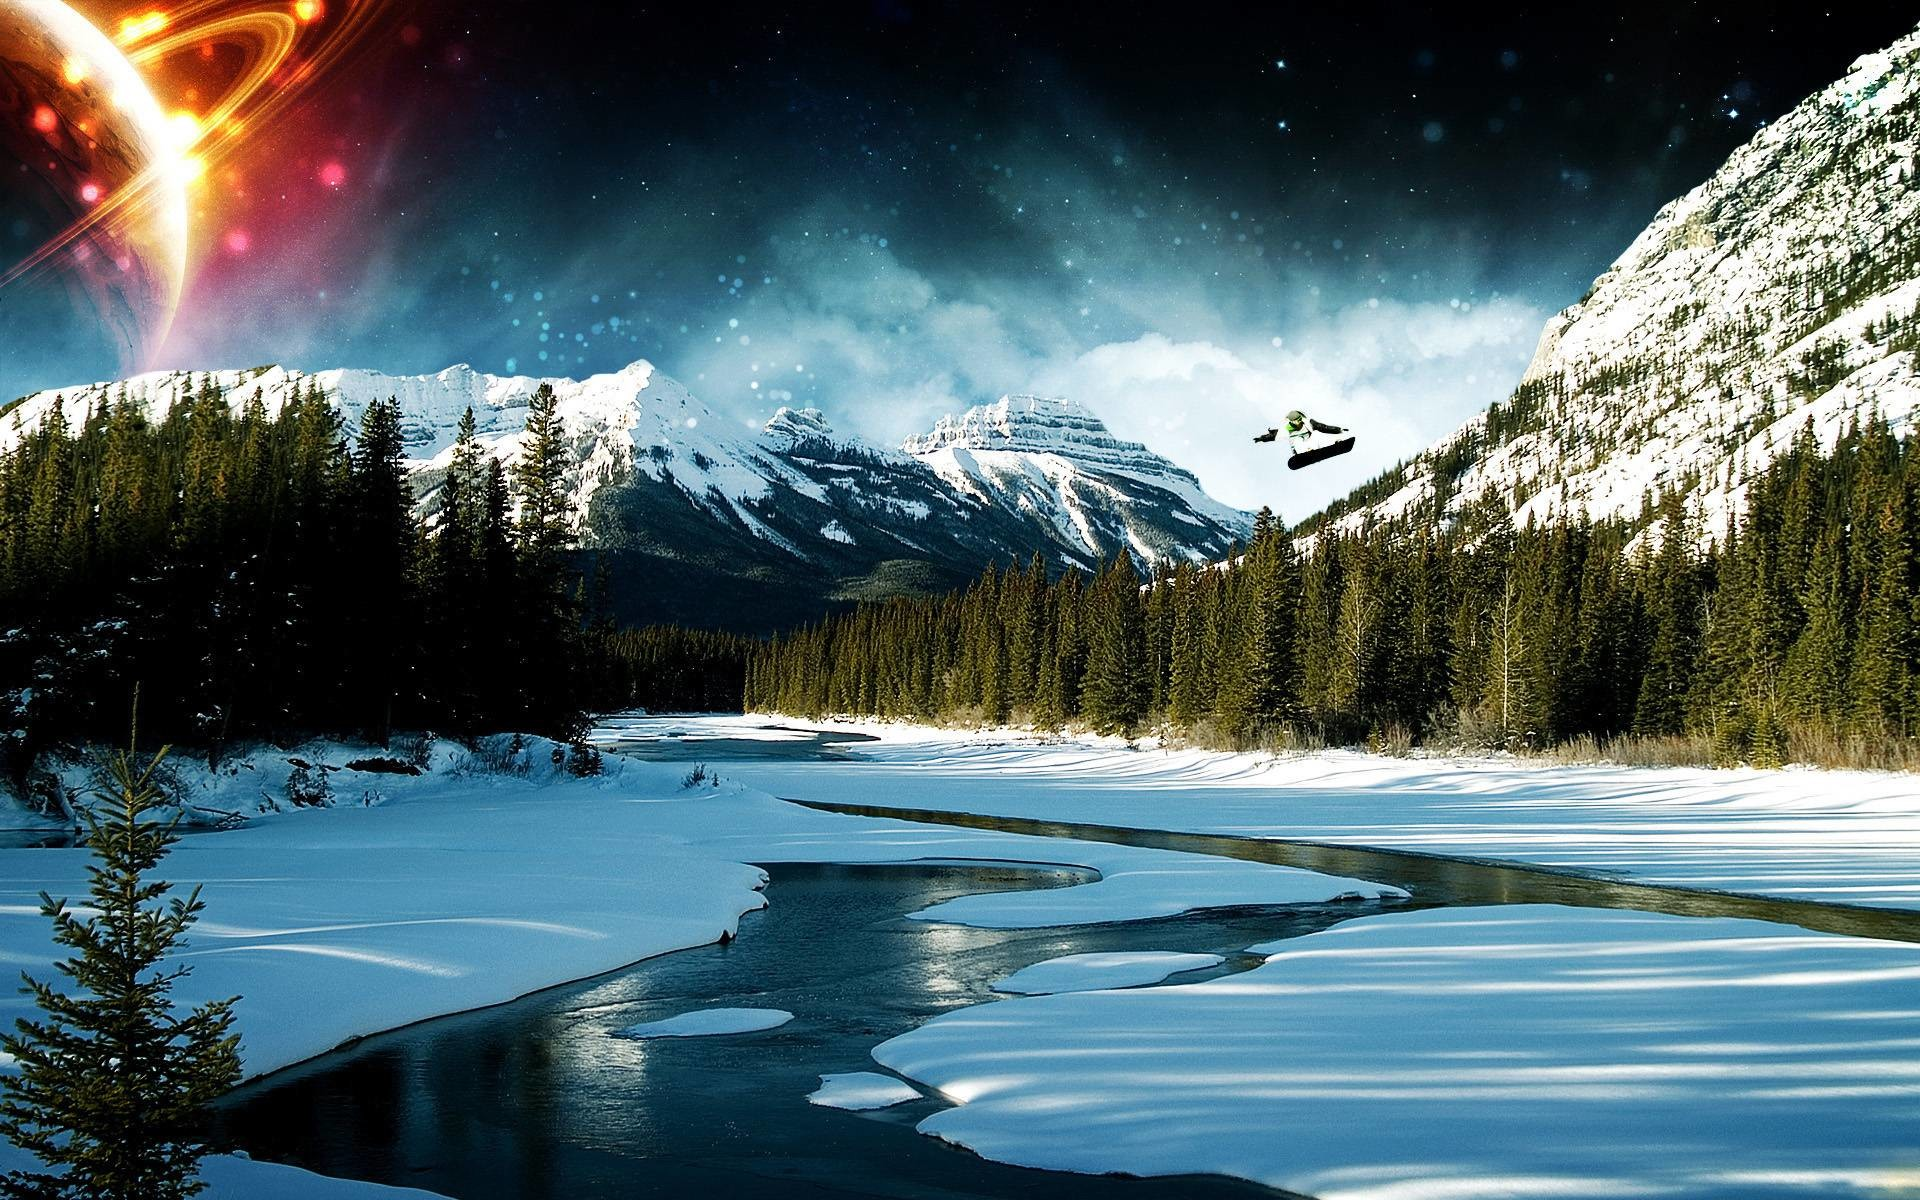 Extreme snowboarder wallpapers and images – wallpapers, pictures .